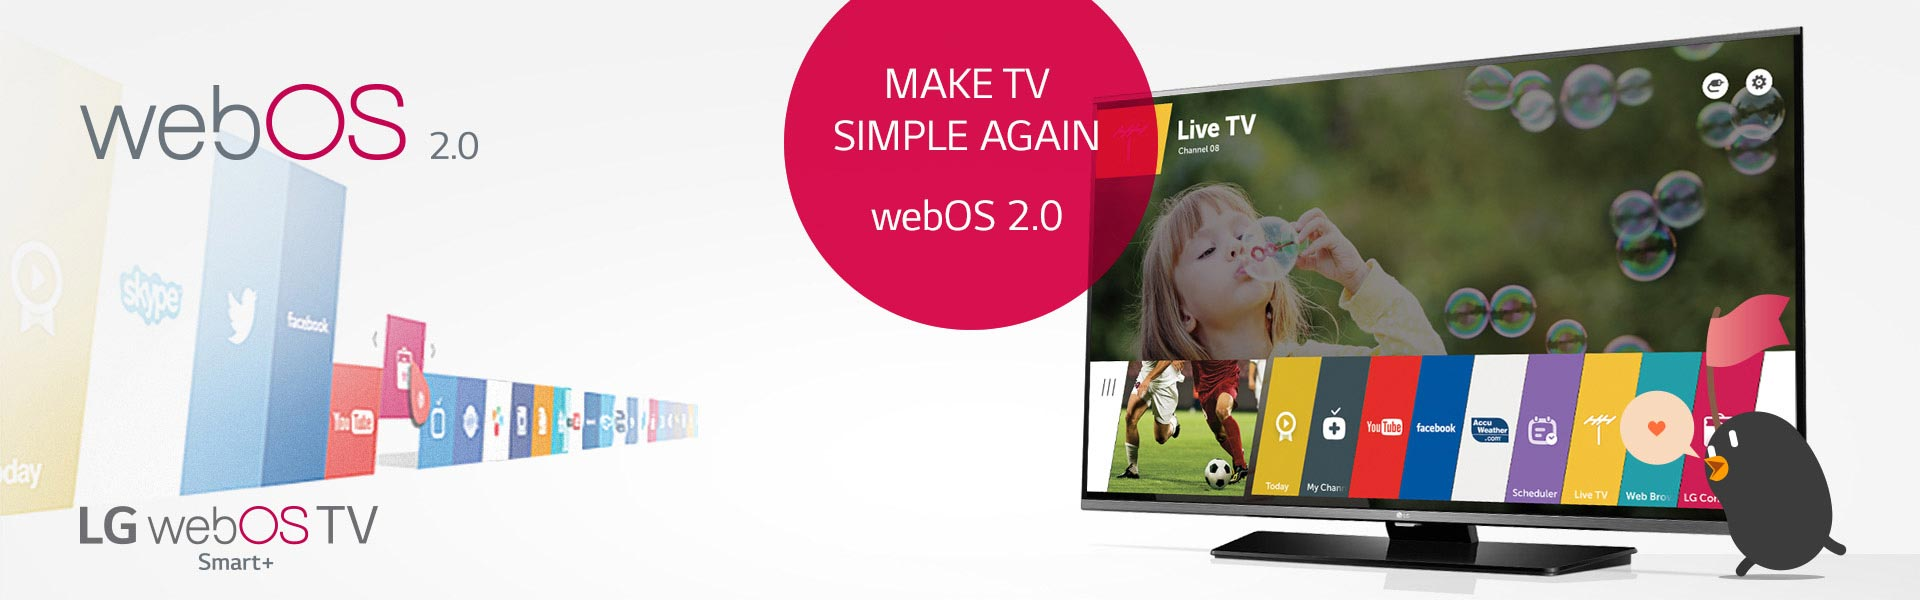 lg-led-tv-smart-webos-challenges-tn